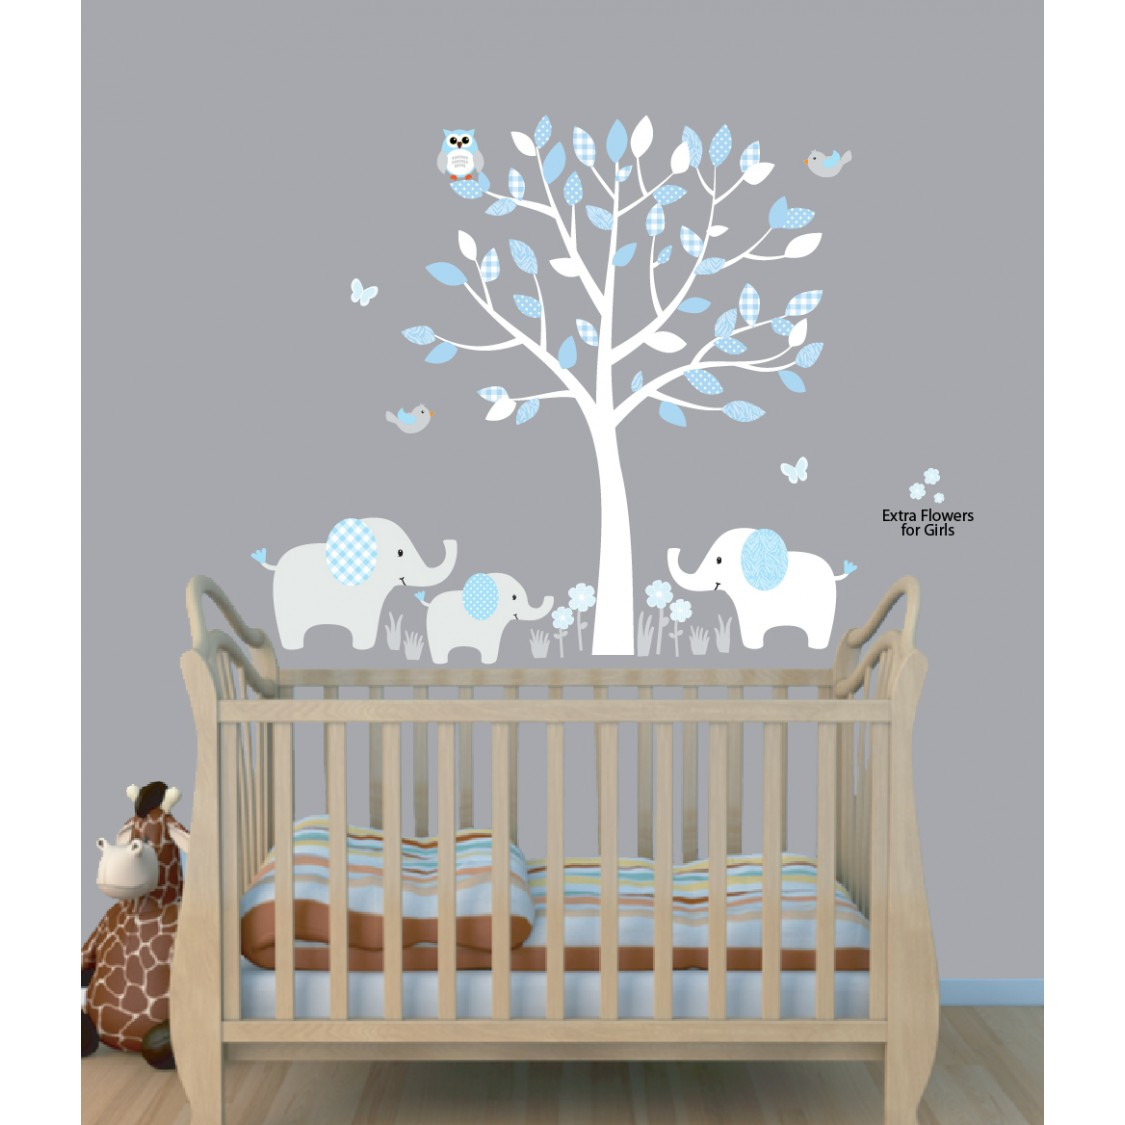 Manly Nursery Nursery Wall Decals Nz Nursery Wall Decals Animals Blue Nursery Jungle Wall Decals Elephant Stickers Elephant Wall Decal Boys Rooms Baby Blue Tree Wall Decals houzz-03 Nursery Wall Decals